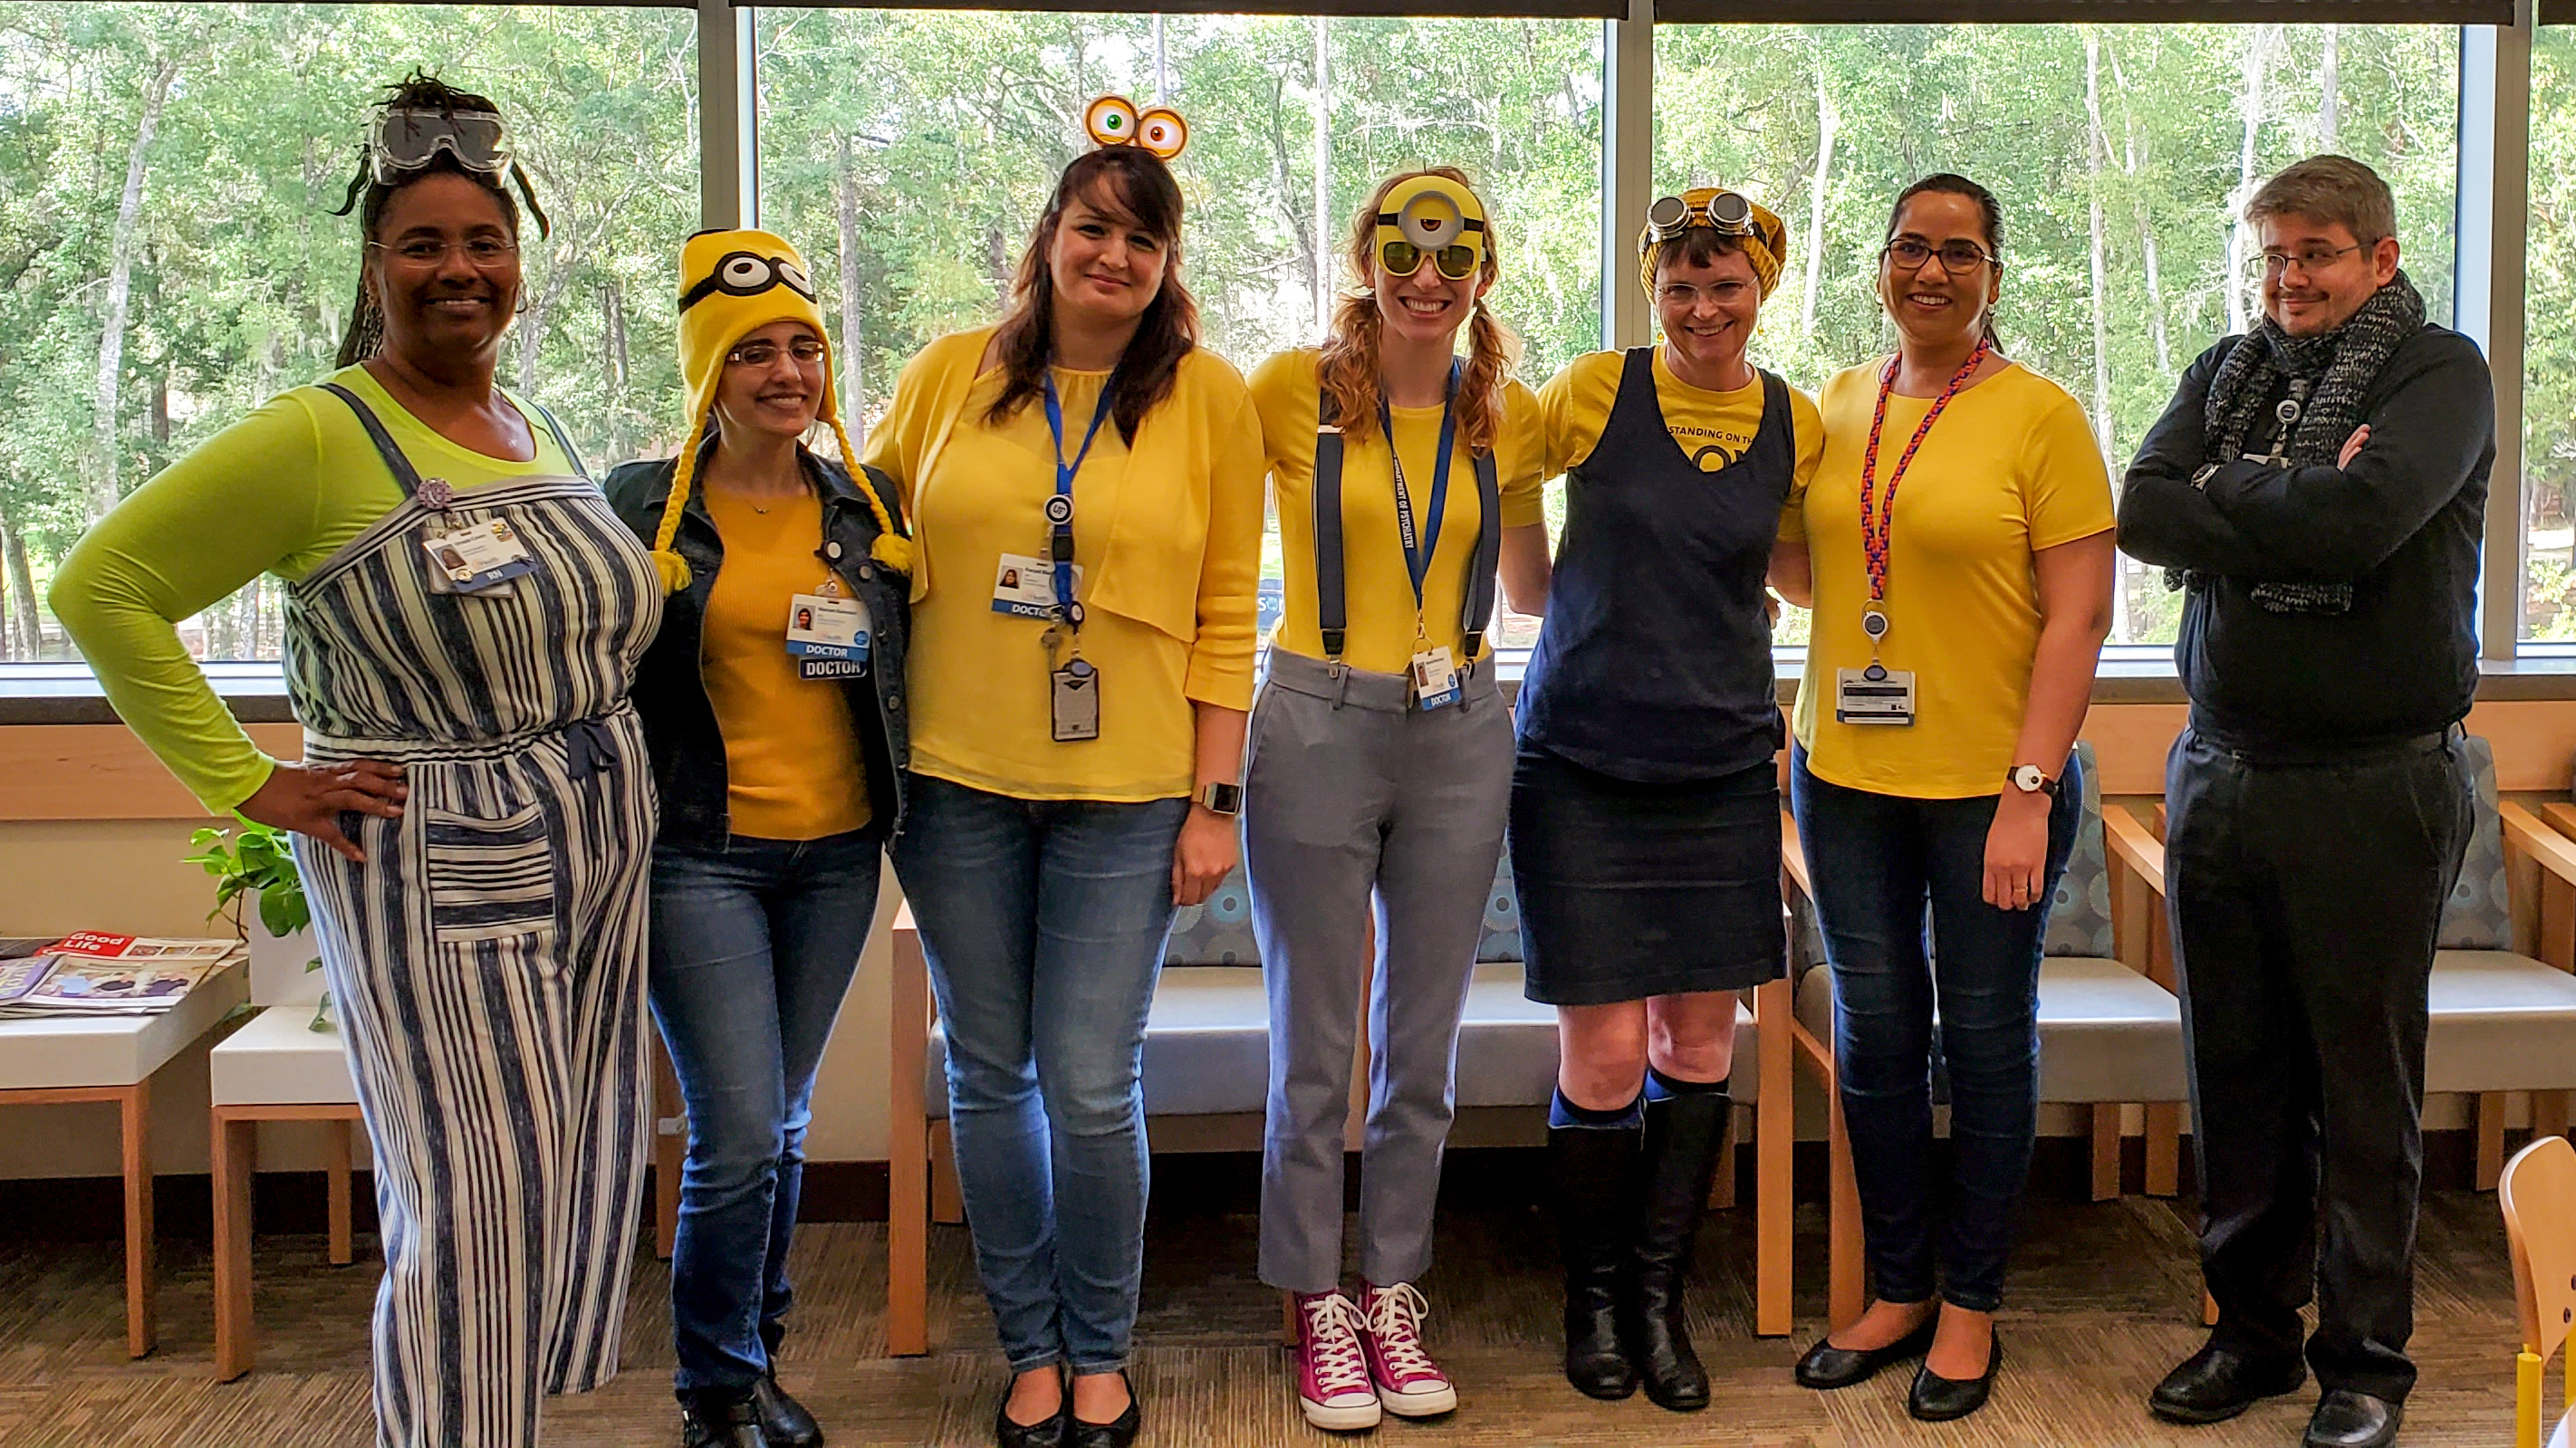 DCAP Group Halloween Costume - Minions